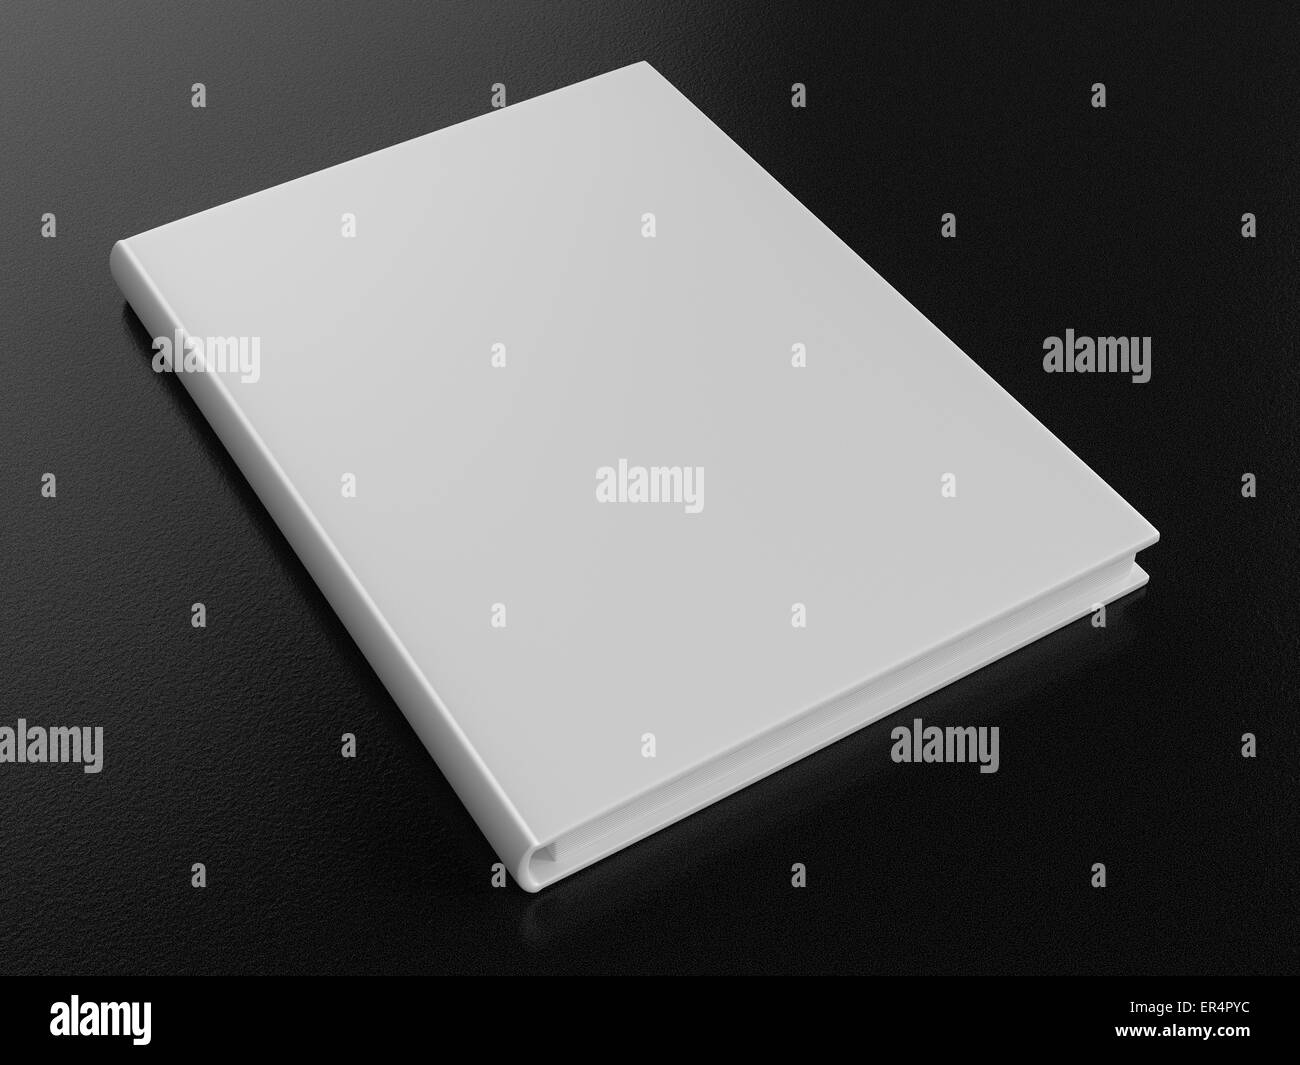 Single blank white book on a dark rough background. - Stock Image